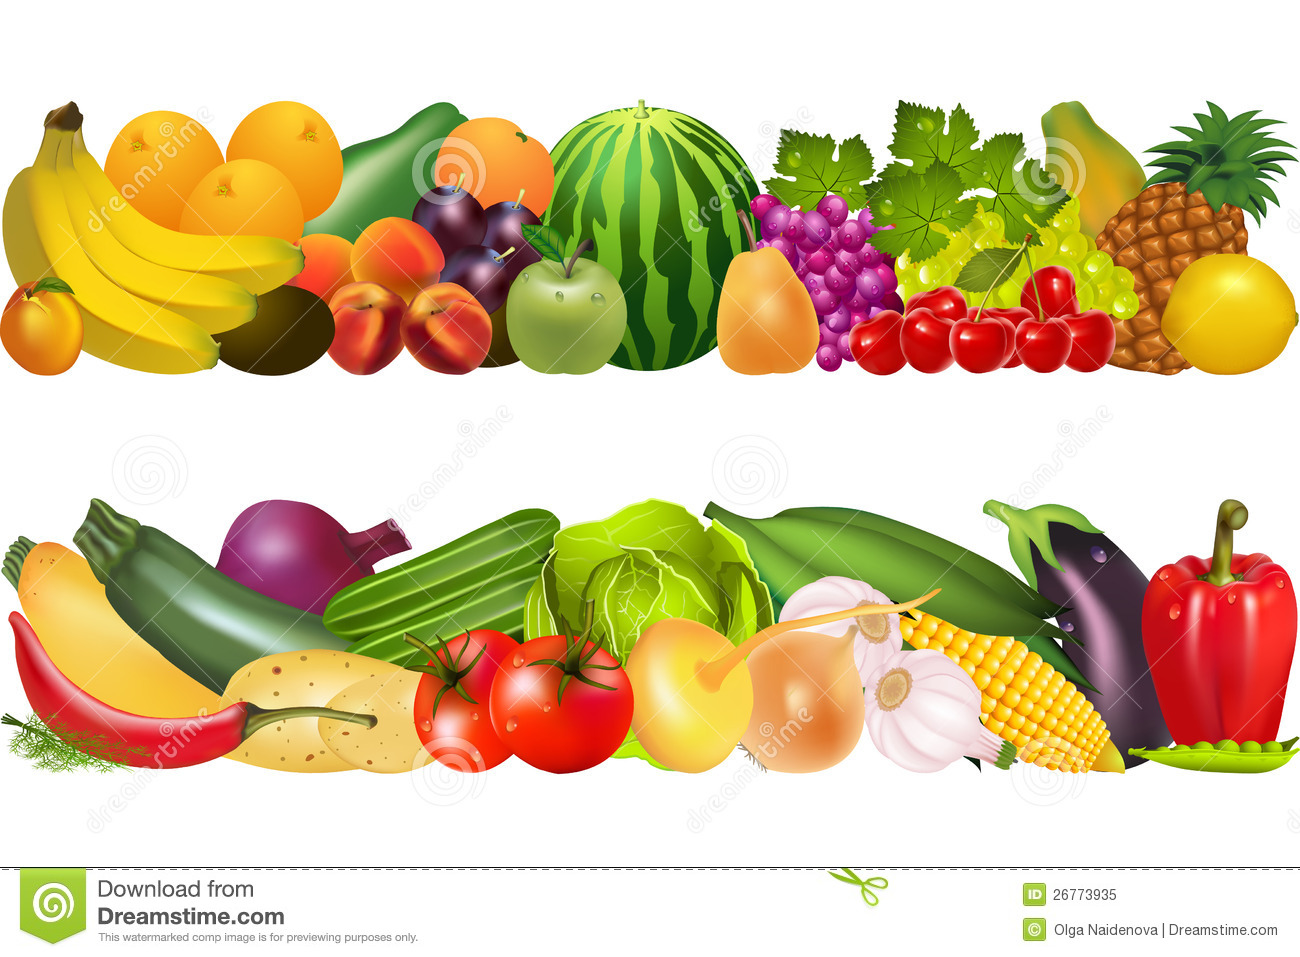 Fruits And Vegetables Clipart - Clipart Kid